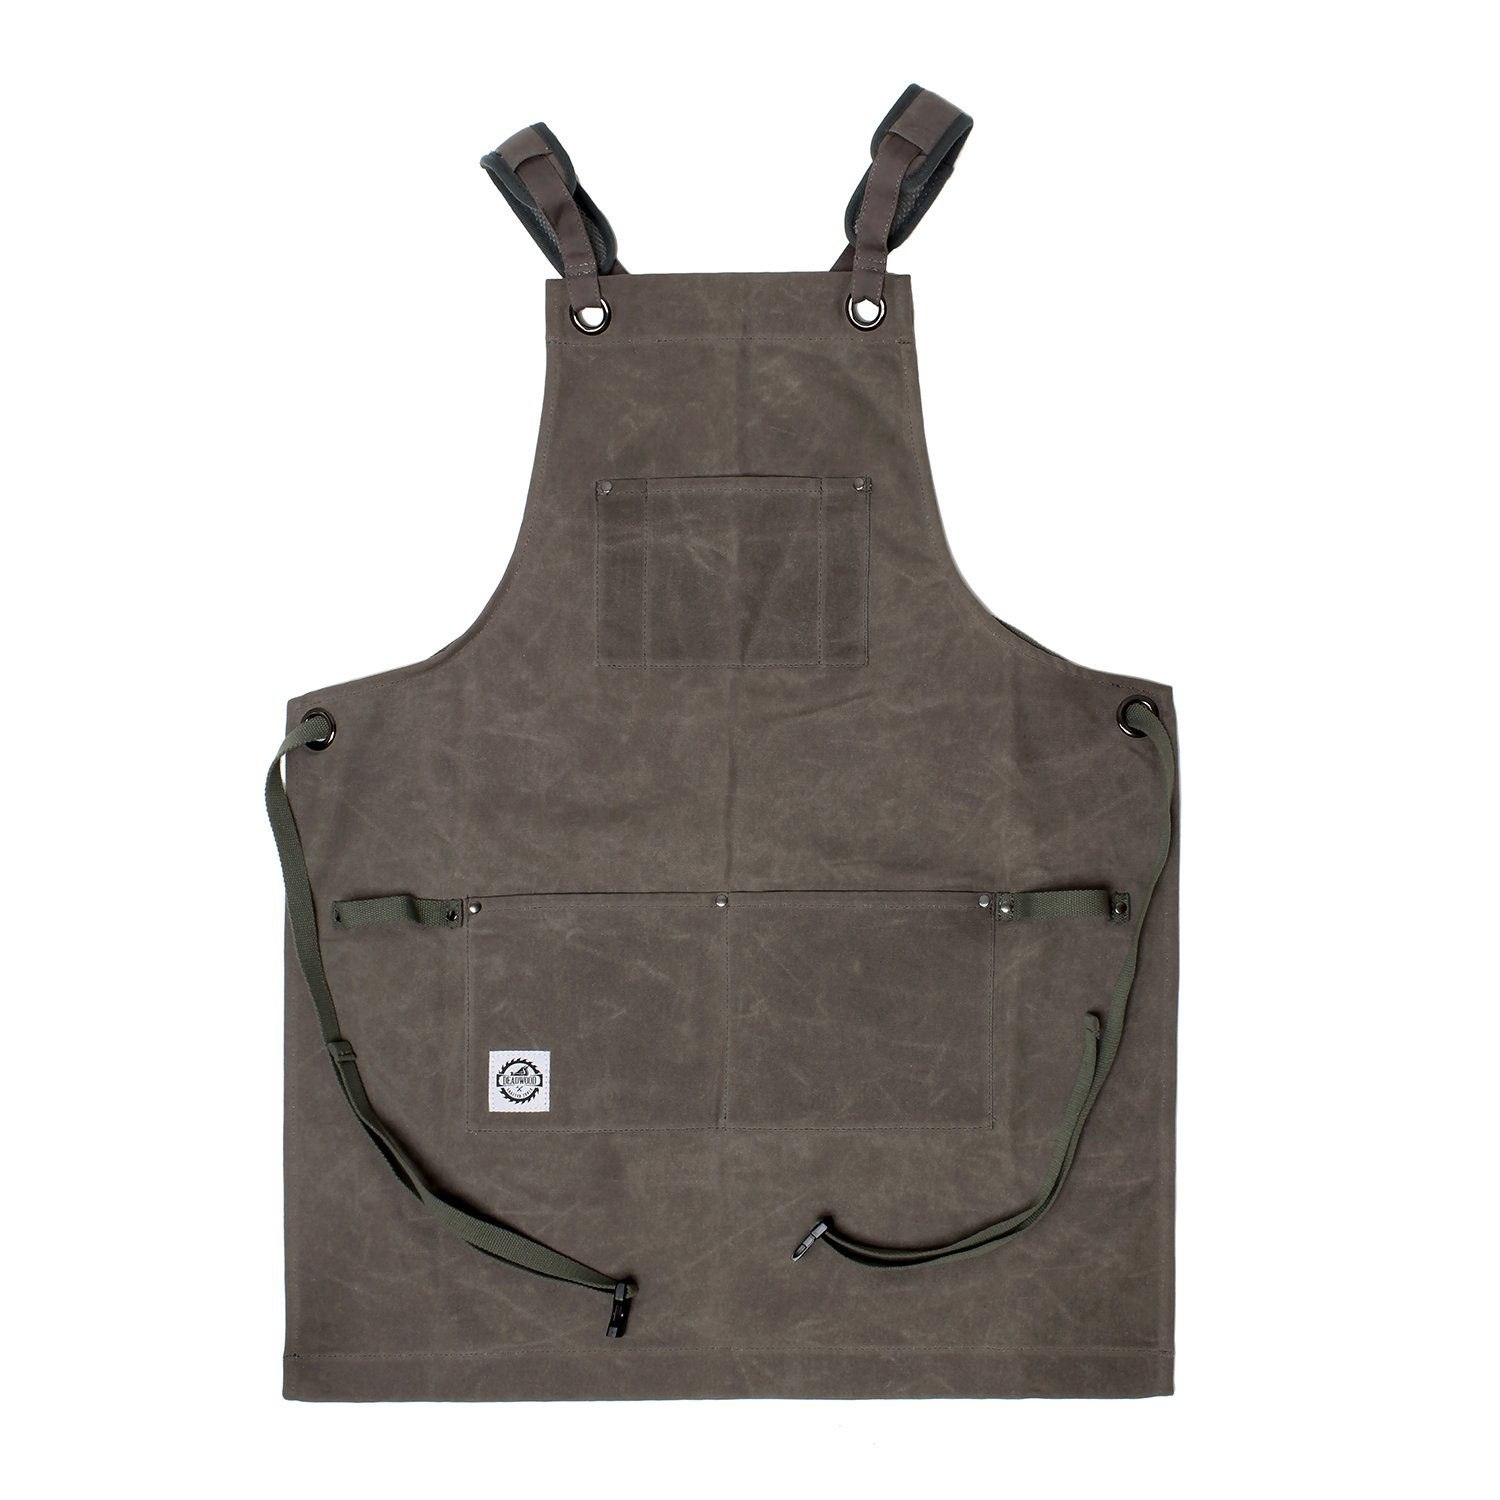 DCT 16oz Waxed Canvas Apron with Tool Pockets in Gray – Cross-Back Straps, Buckle Clip, Men Women Woodworking Painting